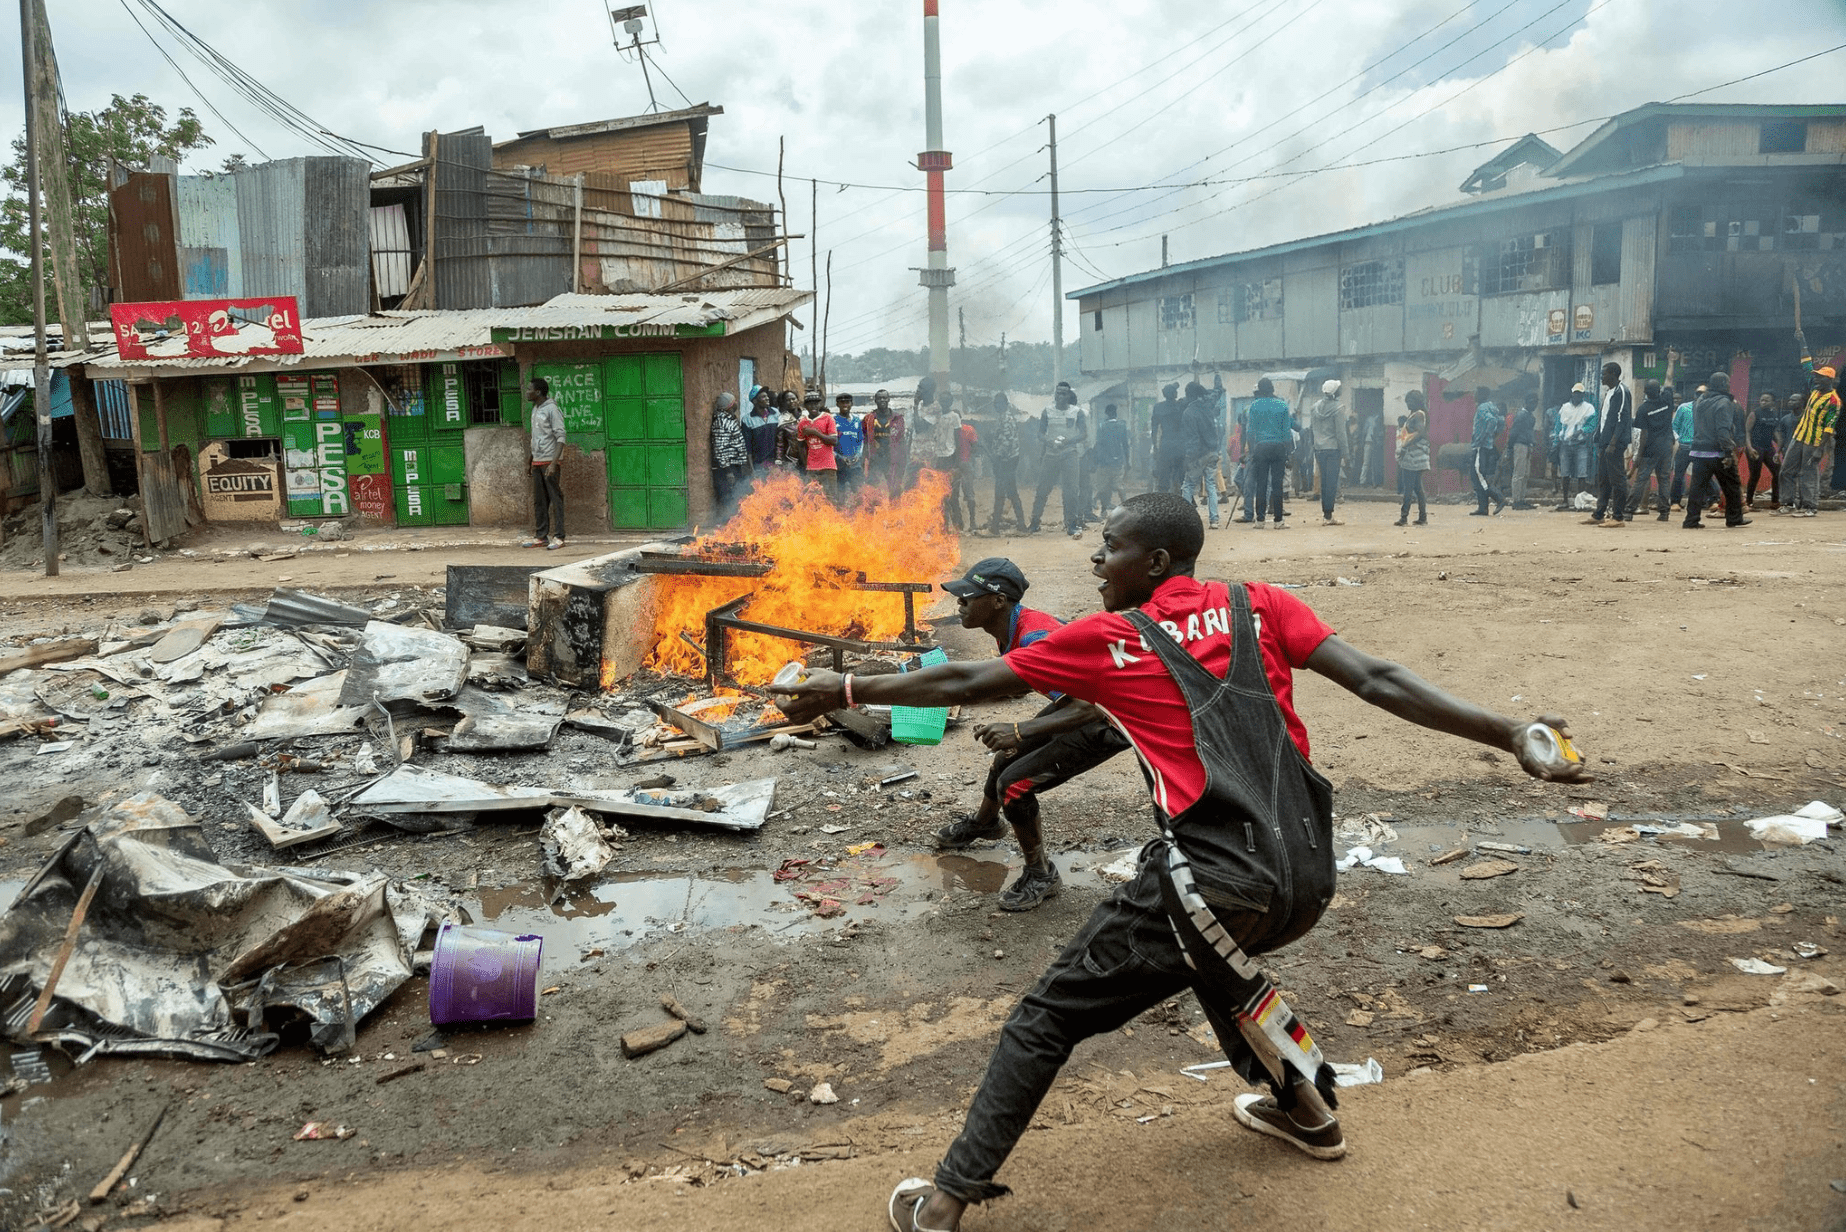 Image OPPOSITION SUPPORTERS PROTESTING IN A NAIROBI SLUM. [GEORGINA GOODWIN/AGENCE FRANCE-PRESSE]